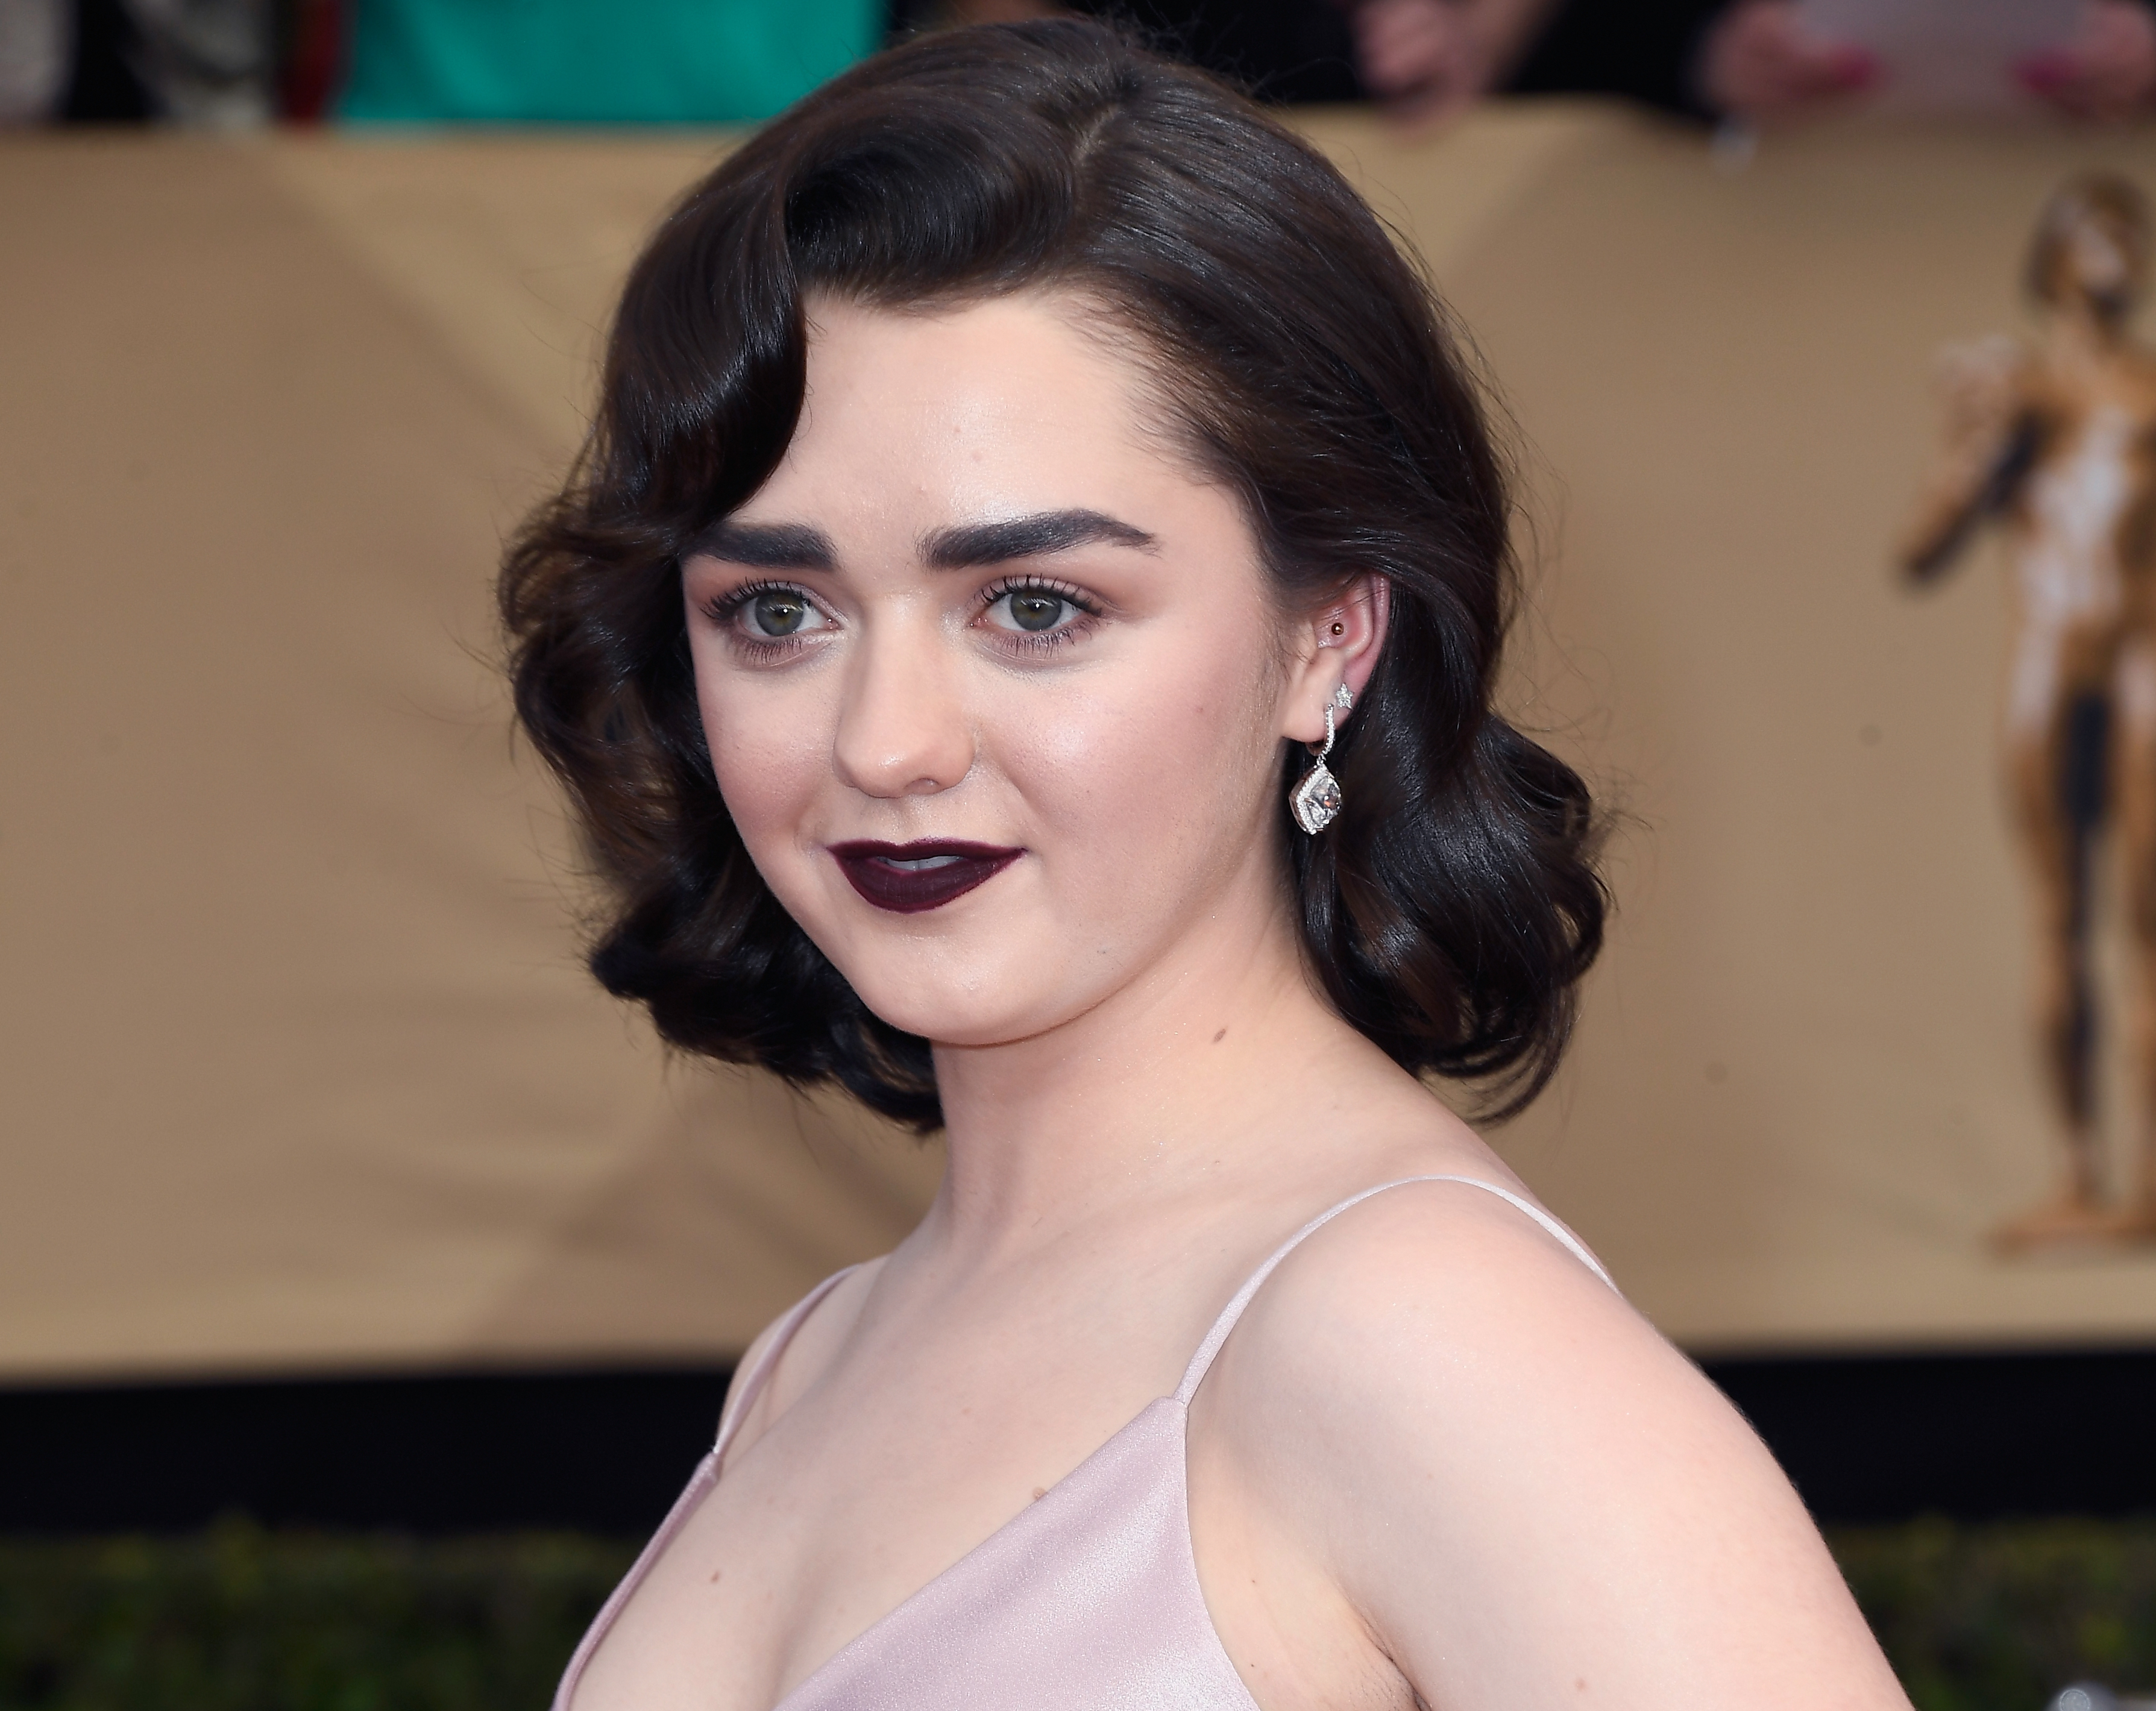 Maisie Williams' stellar studs prove she is a STAR, dahling